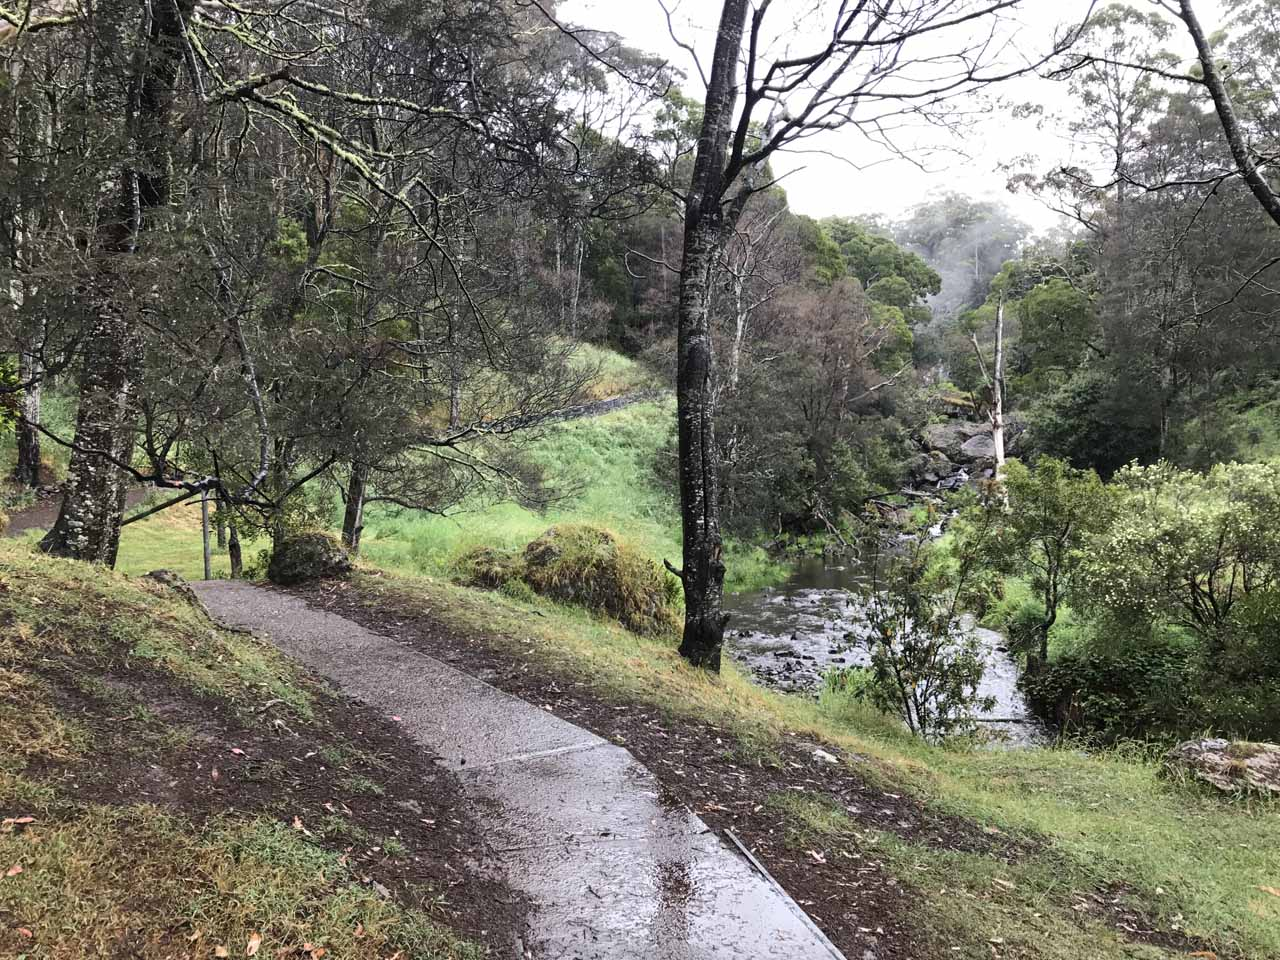 This was the walk along the Guide River from the lower car park up to the Guide Falls